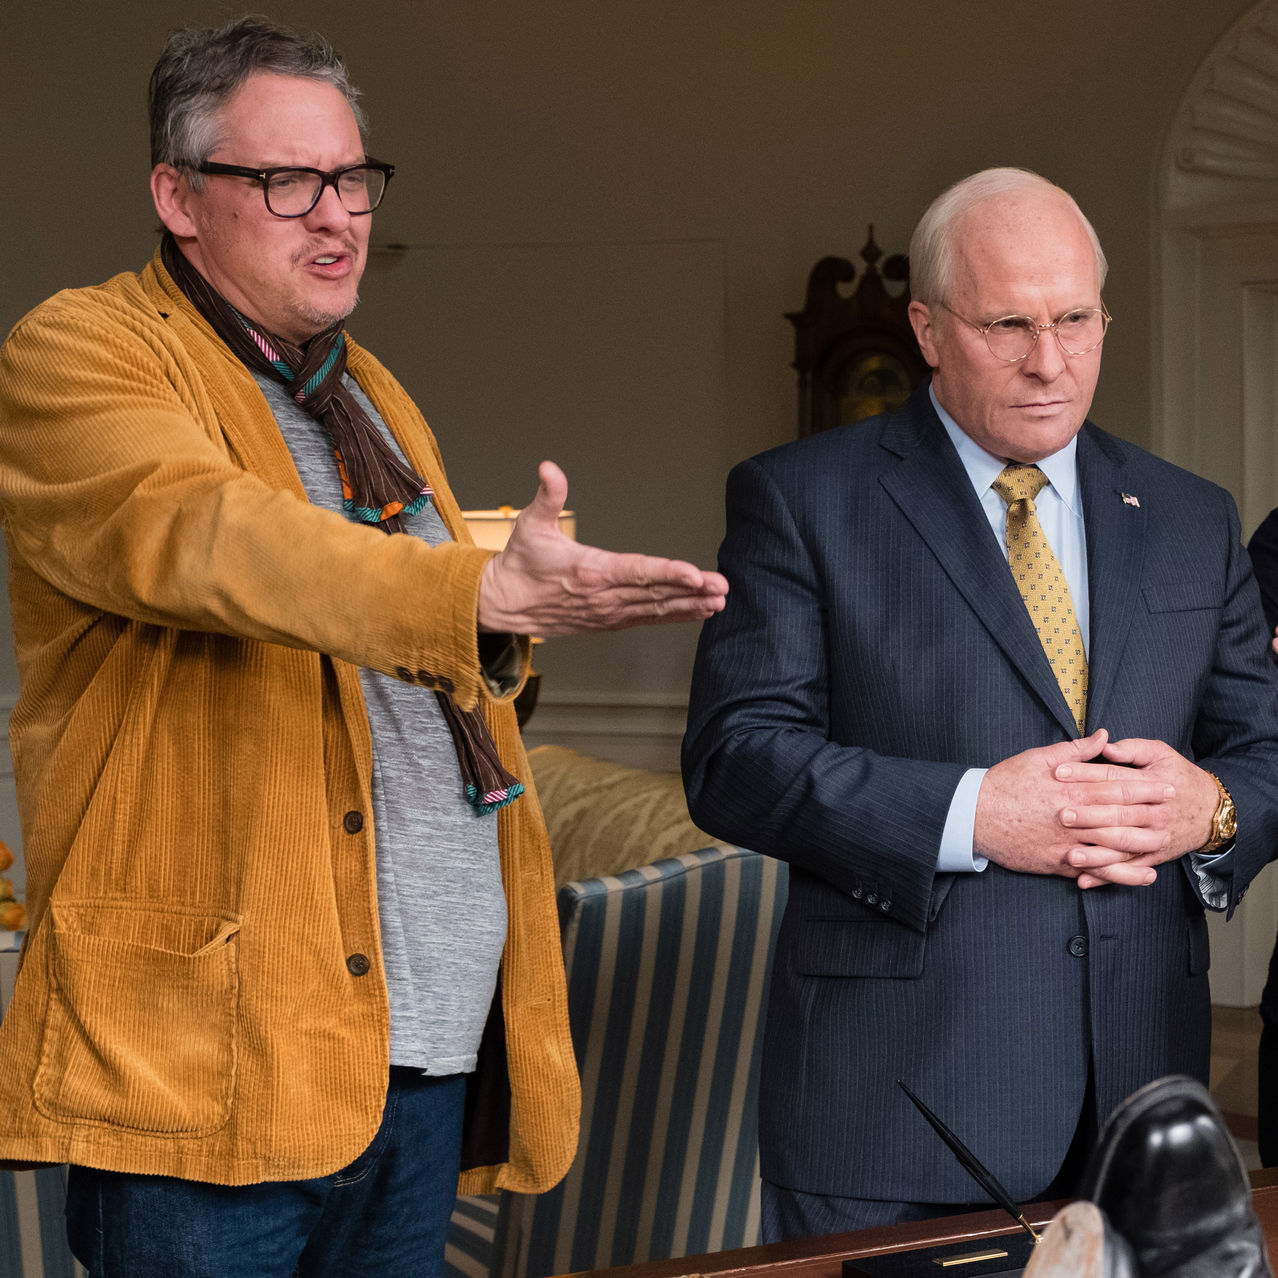 'We tried not to do things with a wink or have Cheney twirling his mustache. He's a guy who believed in what he was doing, and we wanted to show it,' says Adam McKay, left, on the 'Vice' set with actor Christian Bale, who plays Dick Cheney.